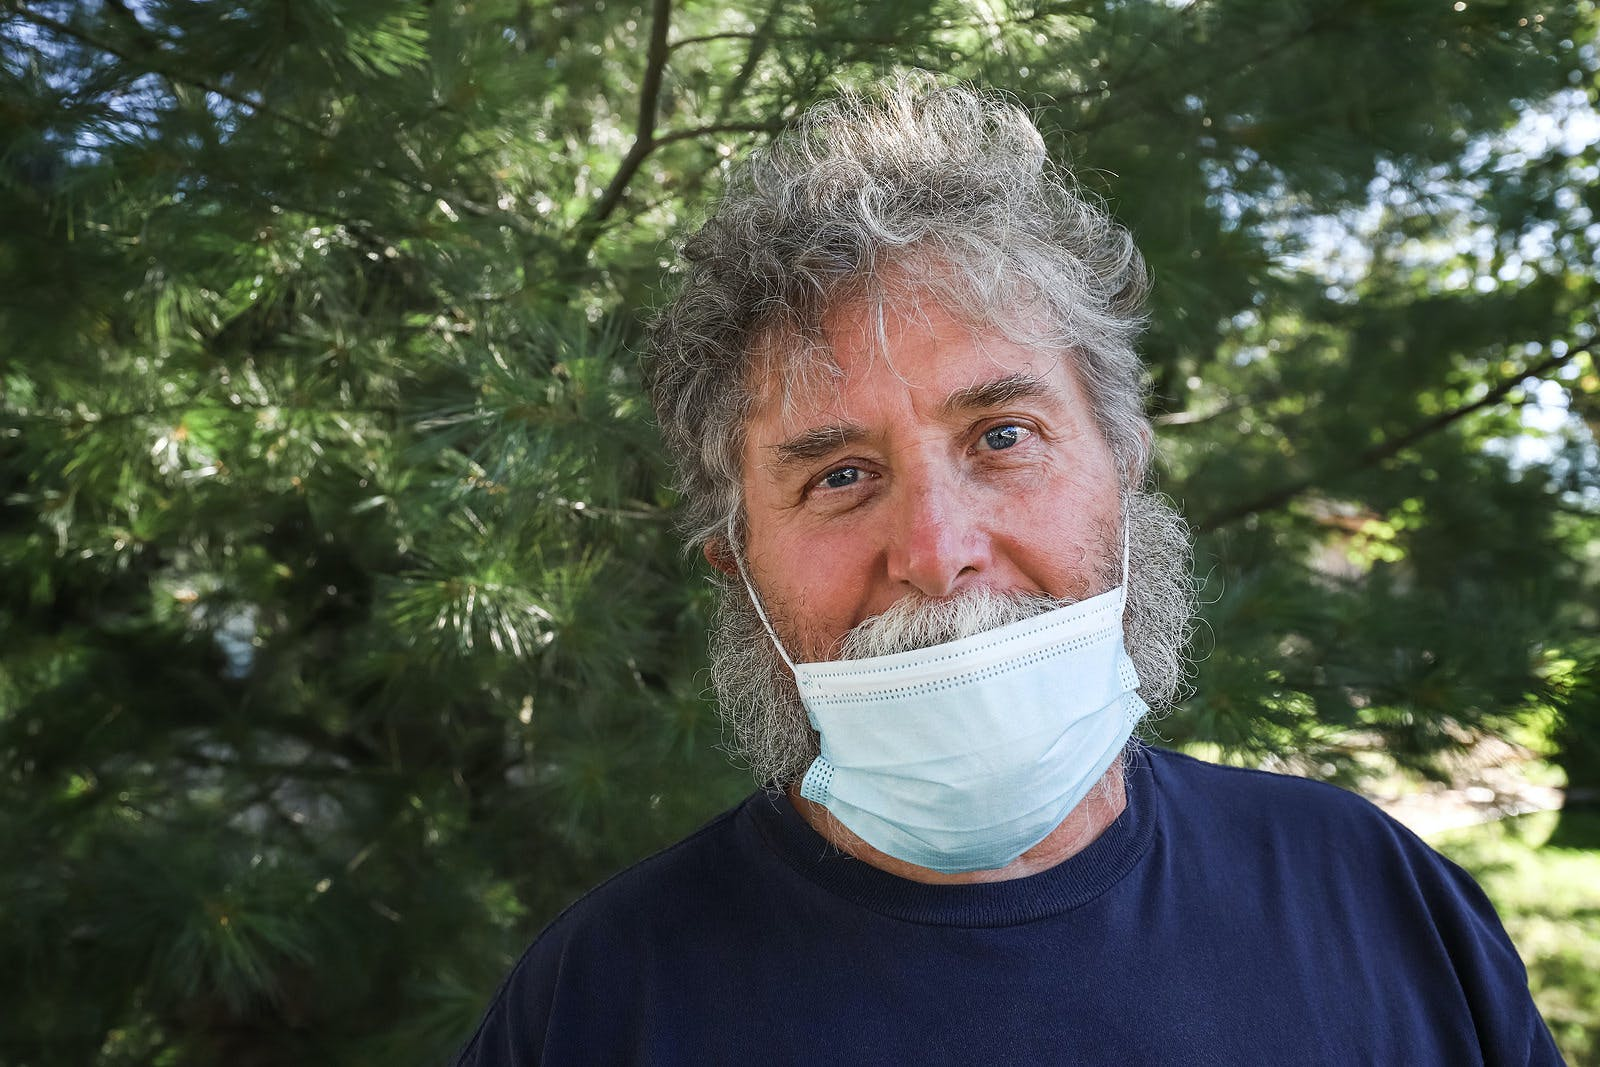 Gray-haired man wearing surgical mask pulled below his nose but over his beard